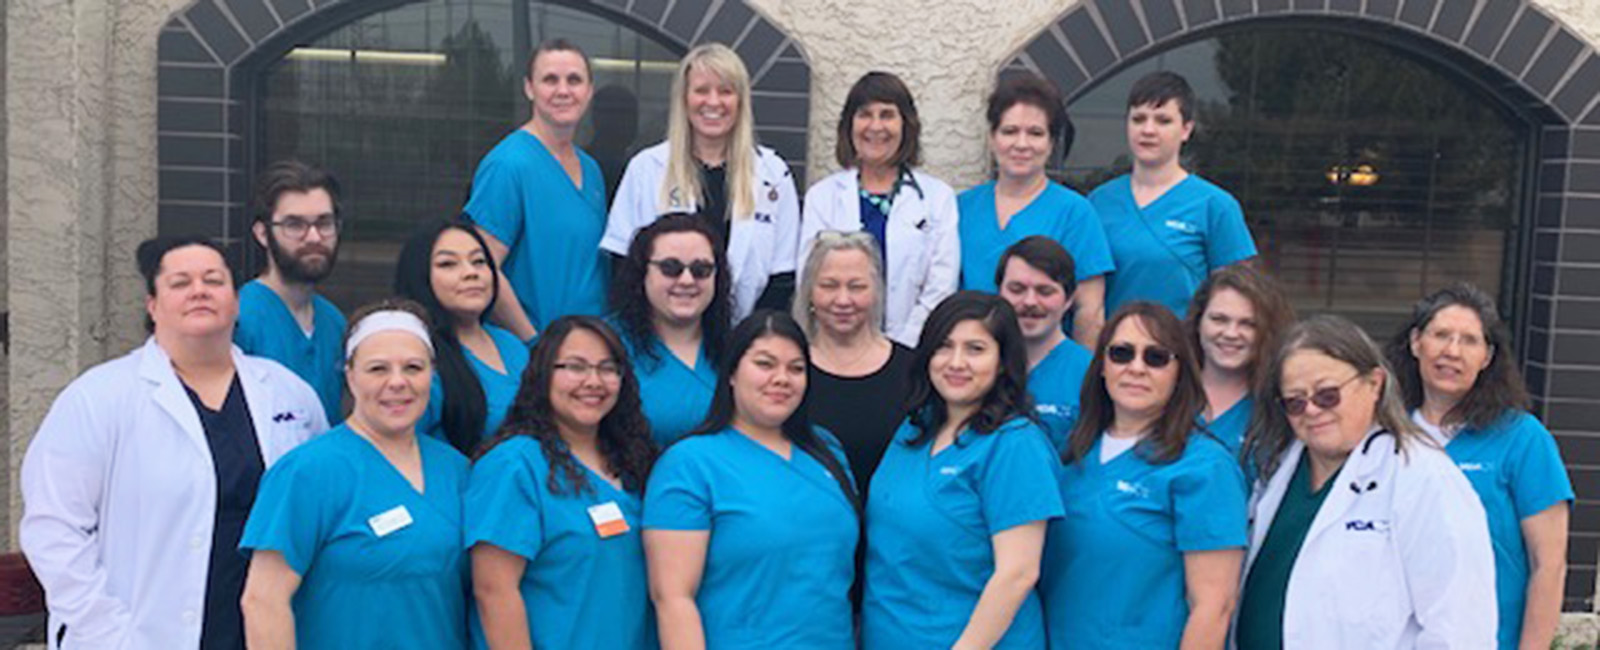 Team Picture of VCA Northern Animal Hospital